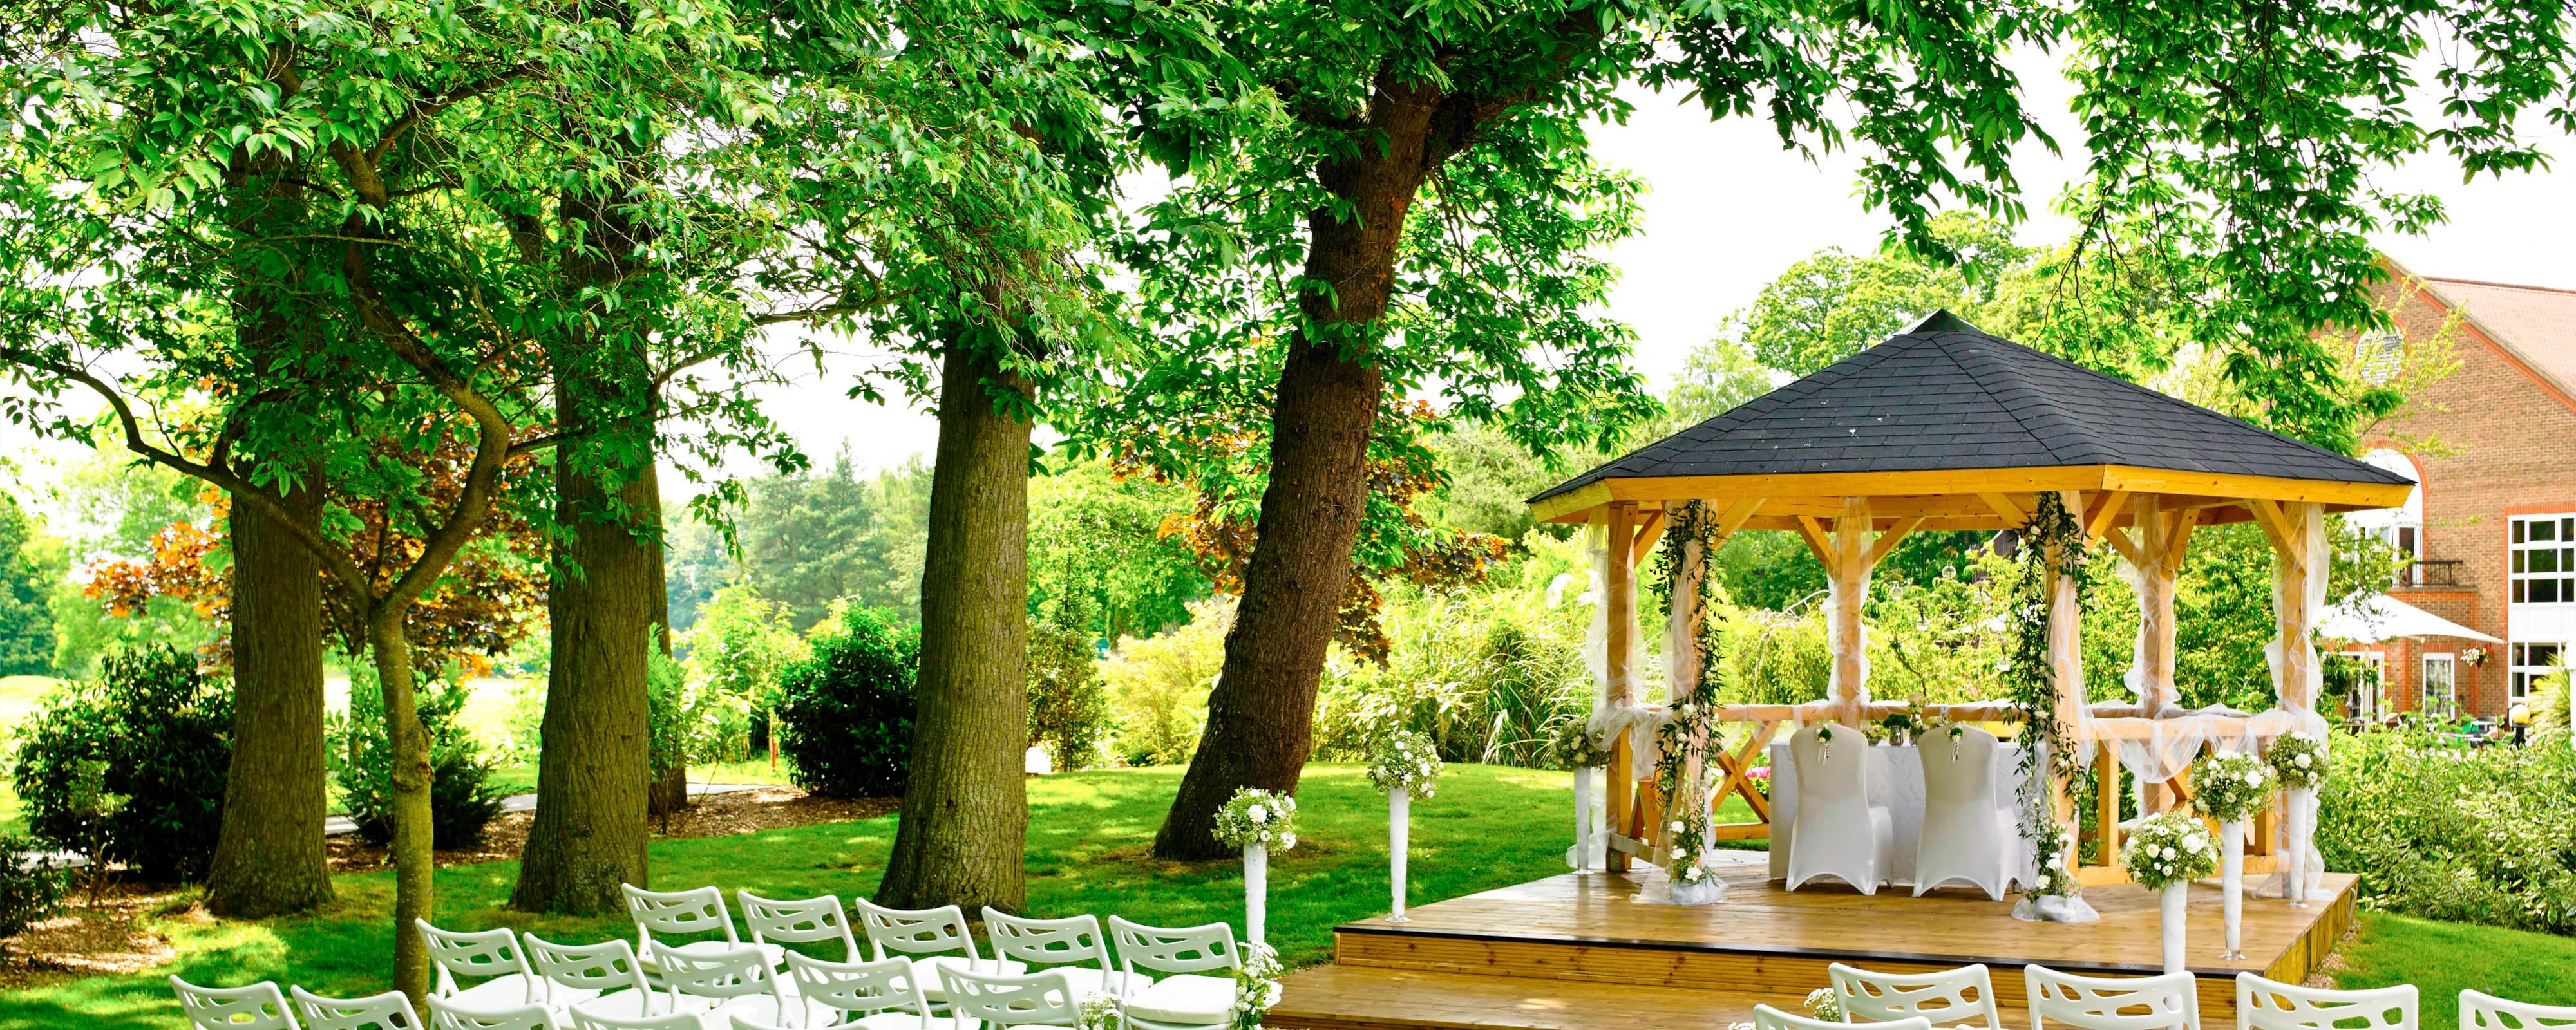 Maidstone Wedding Reception Venues